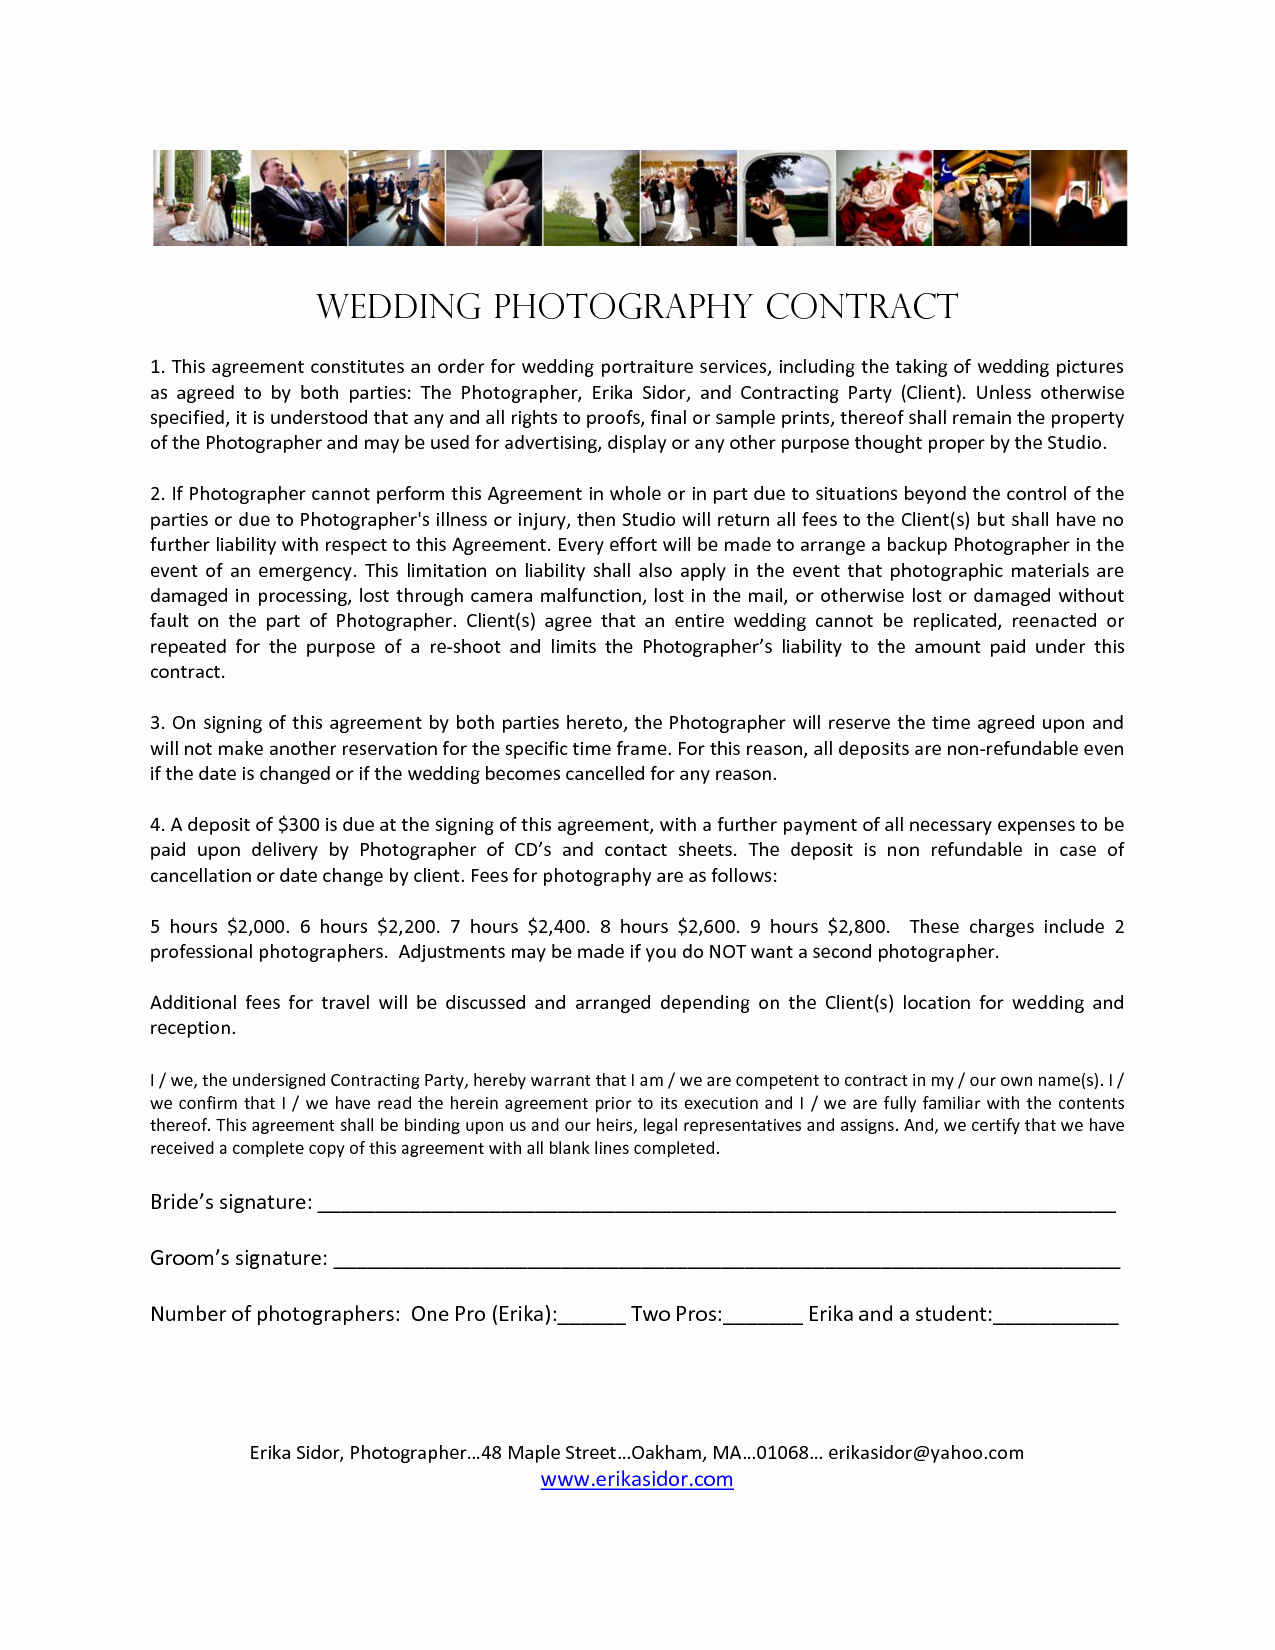 Wedding Videographer Contract Template Lovely Wedding Graphy Contract Agreement Wedding